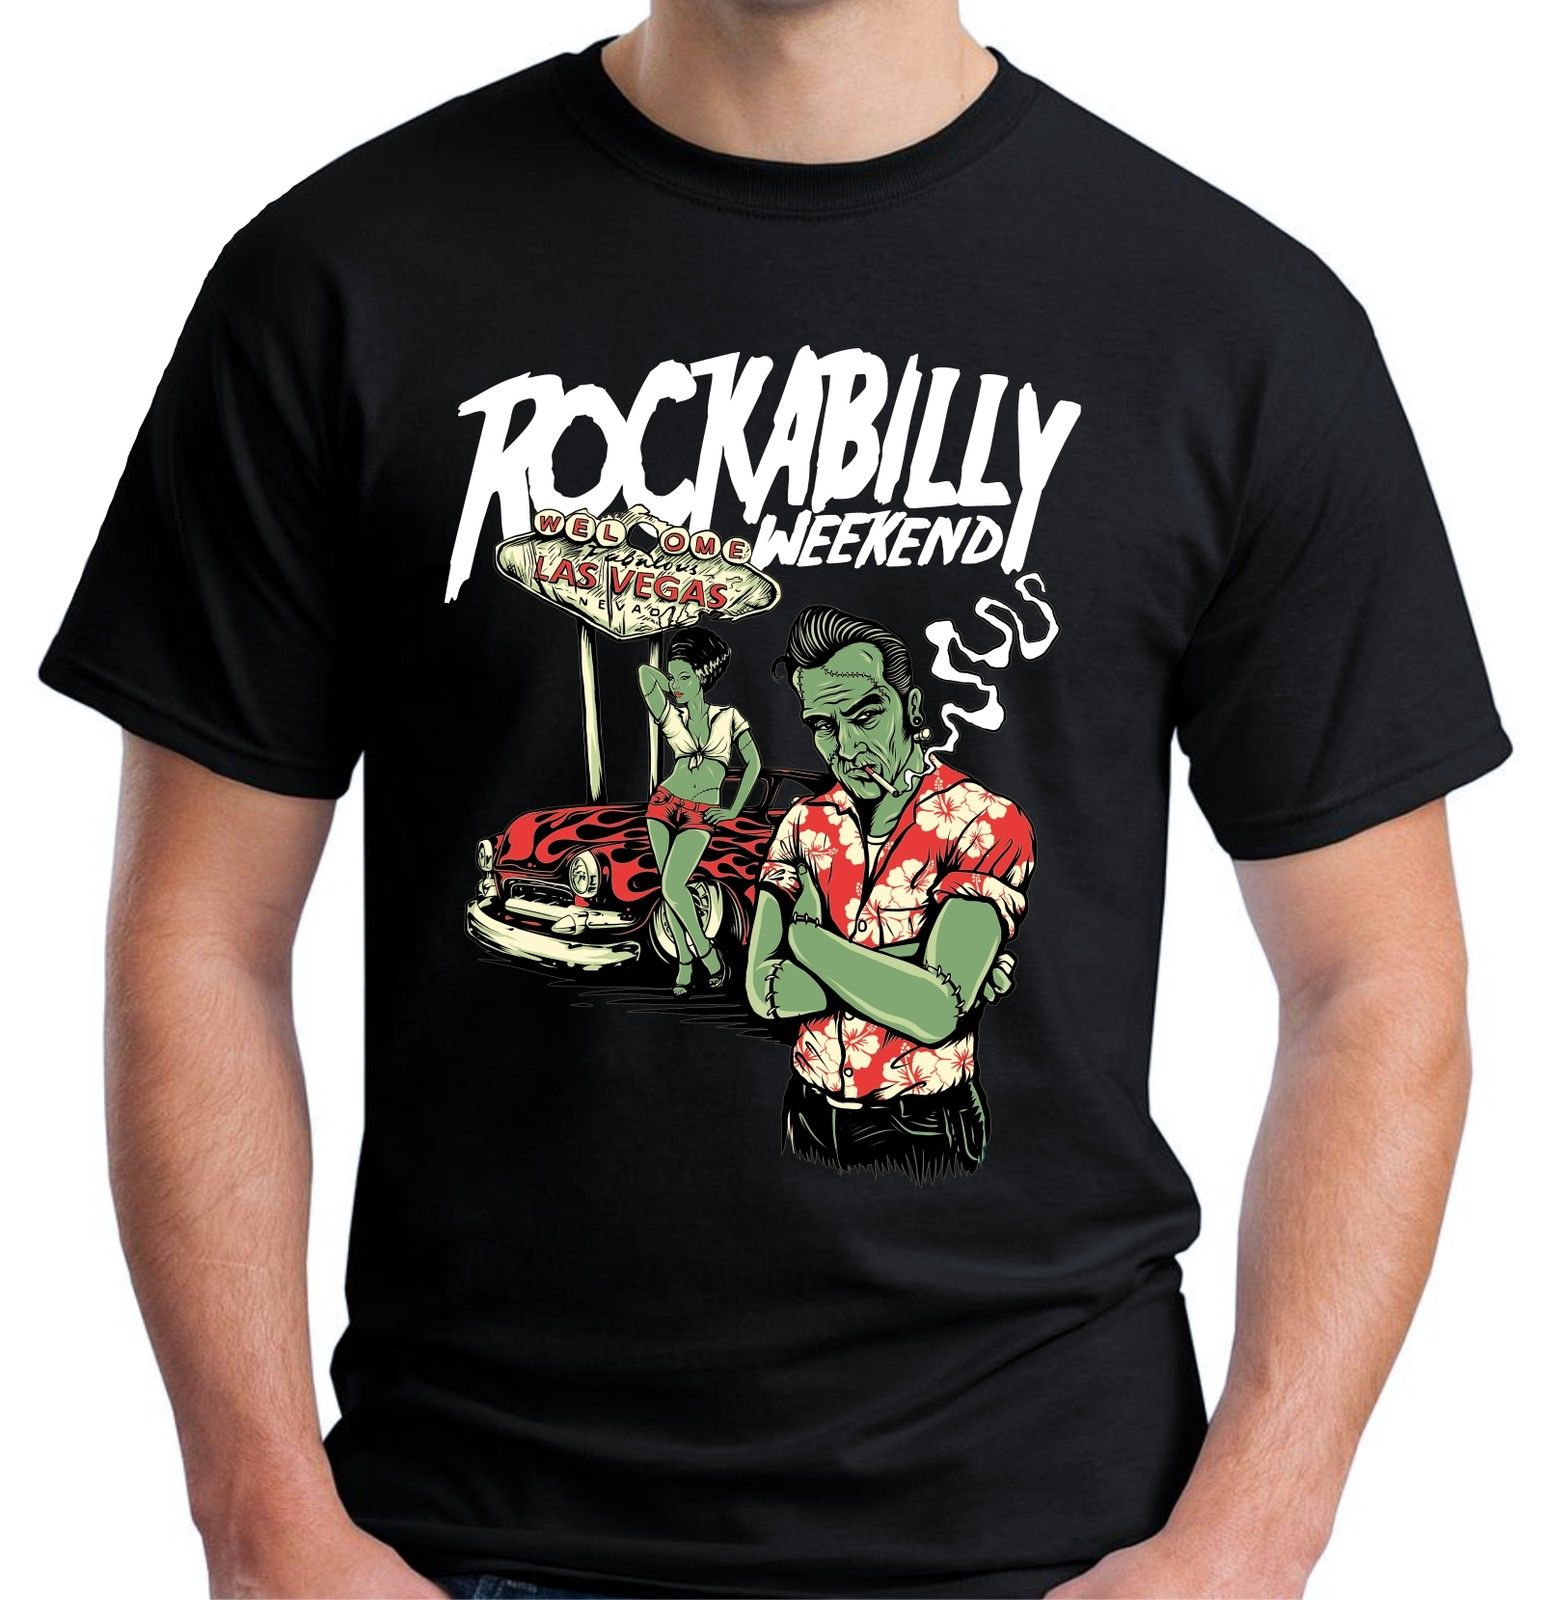 Rockabilly clothing stores las vegas